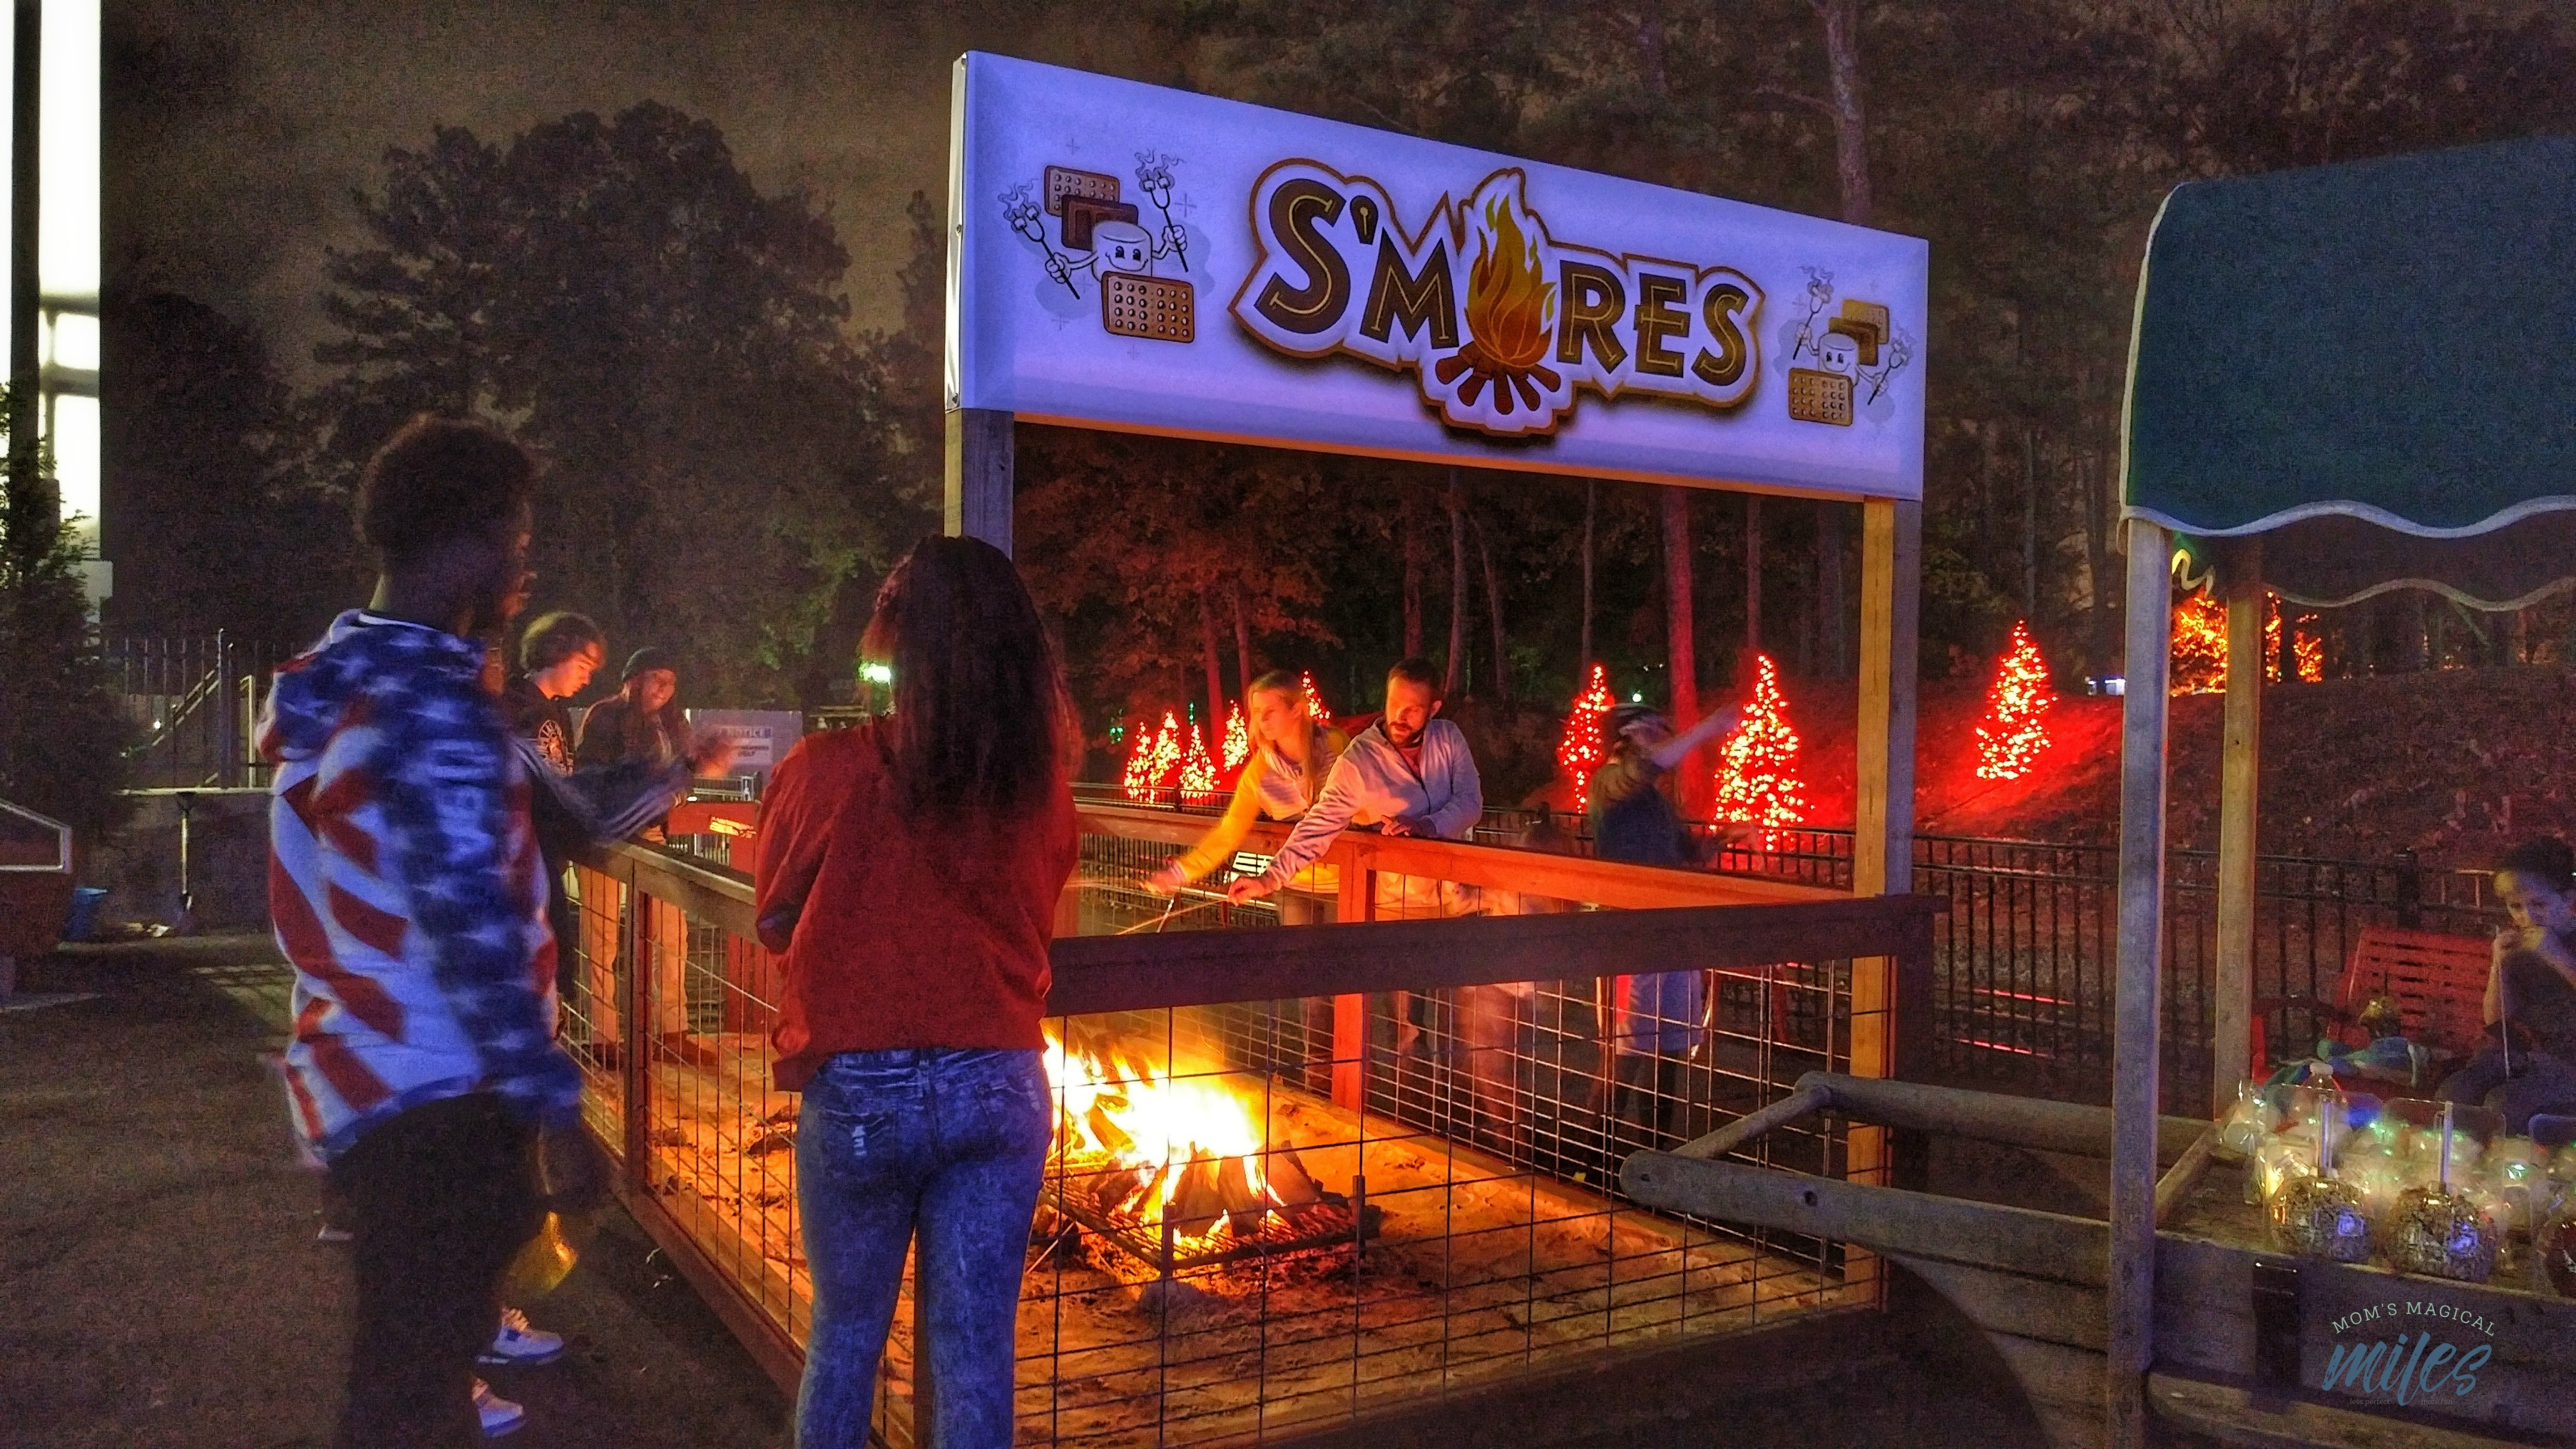 There is all kinds of winter family fun to be had at Six Flags Holiday in the Park! The whole family can gather round the fire and make s'mores!